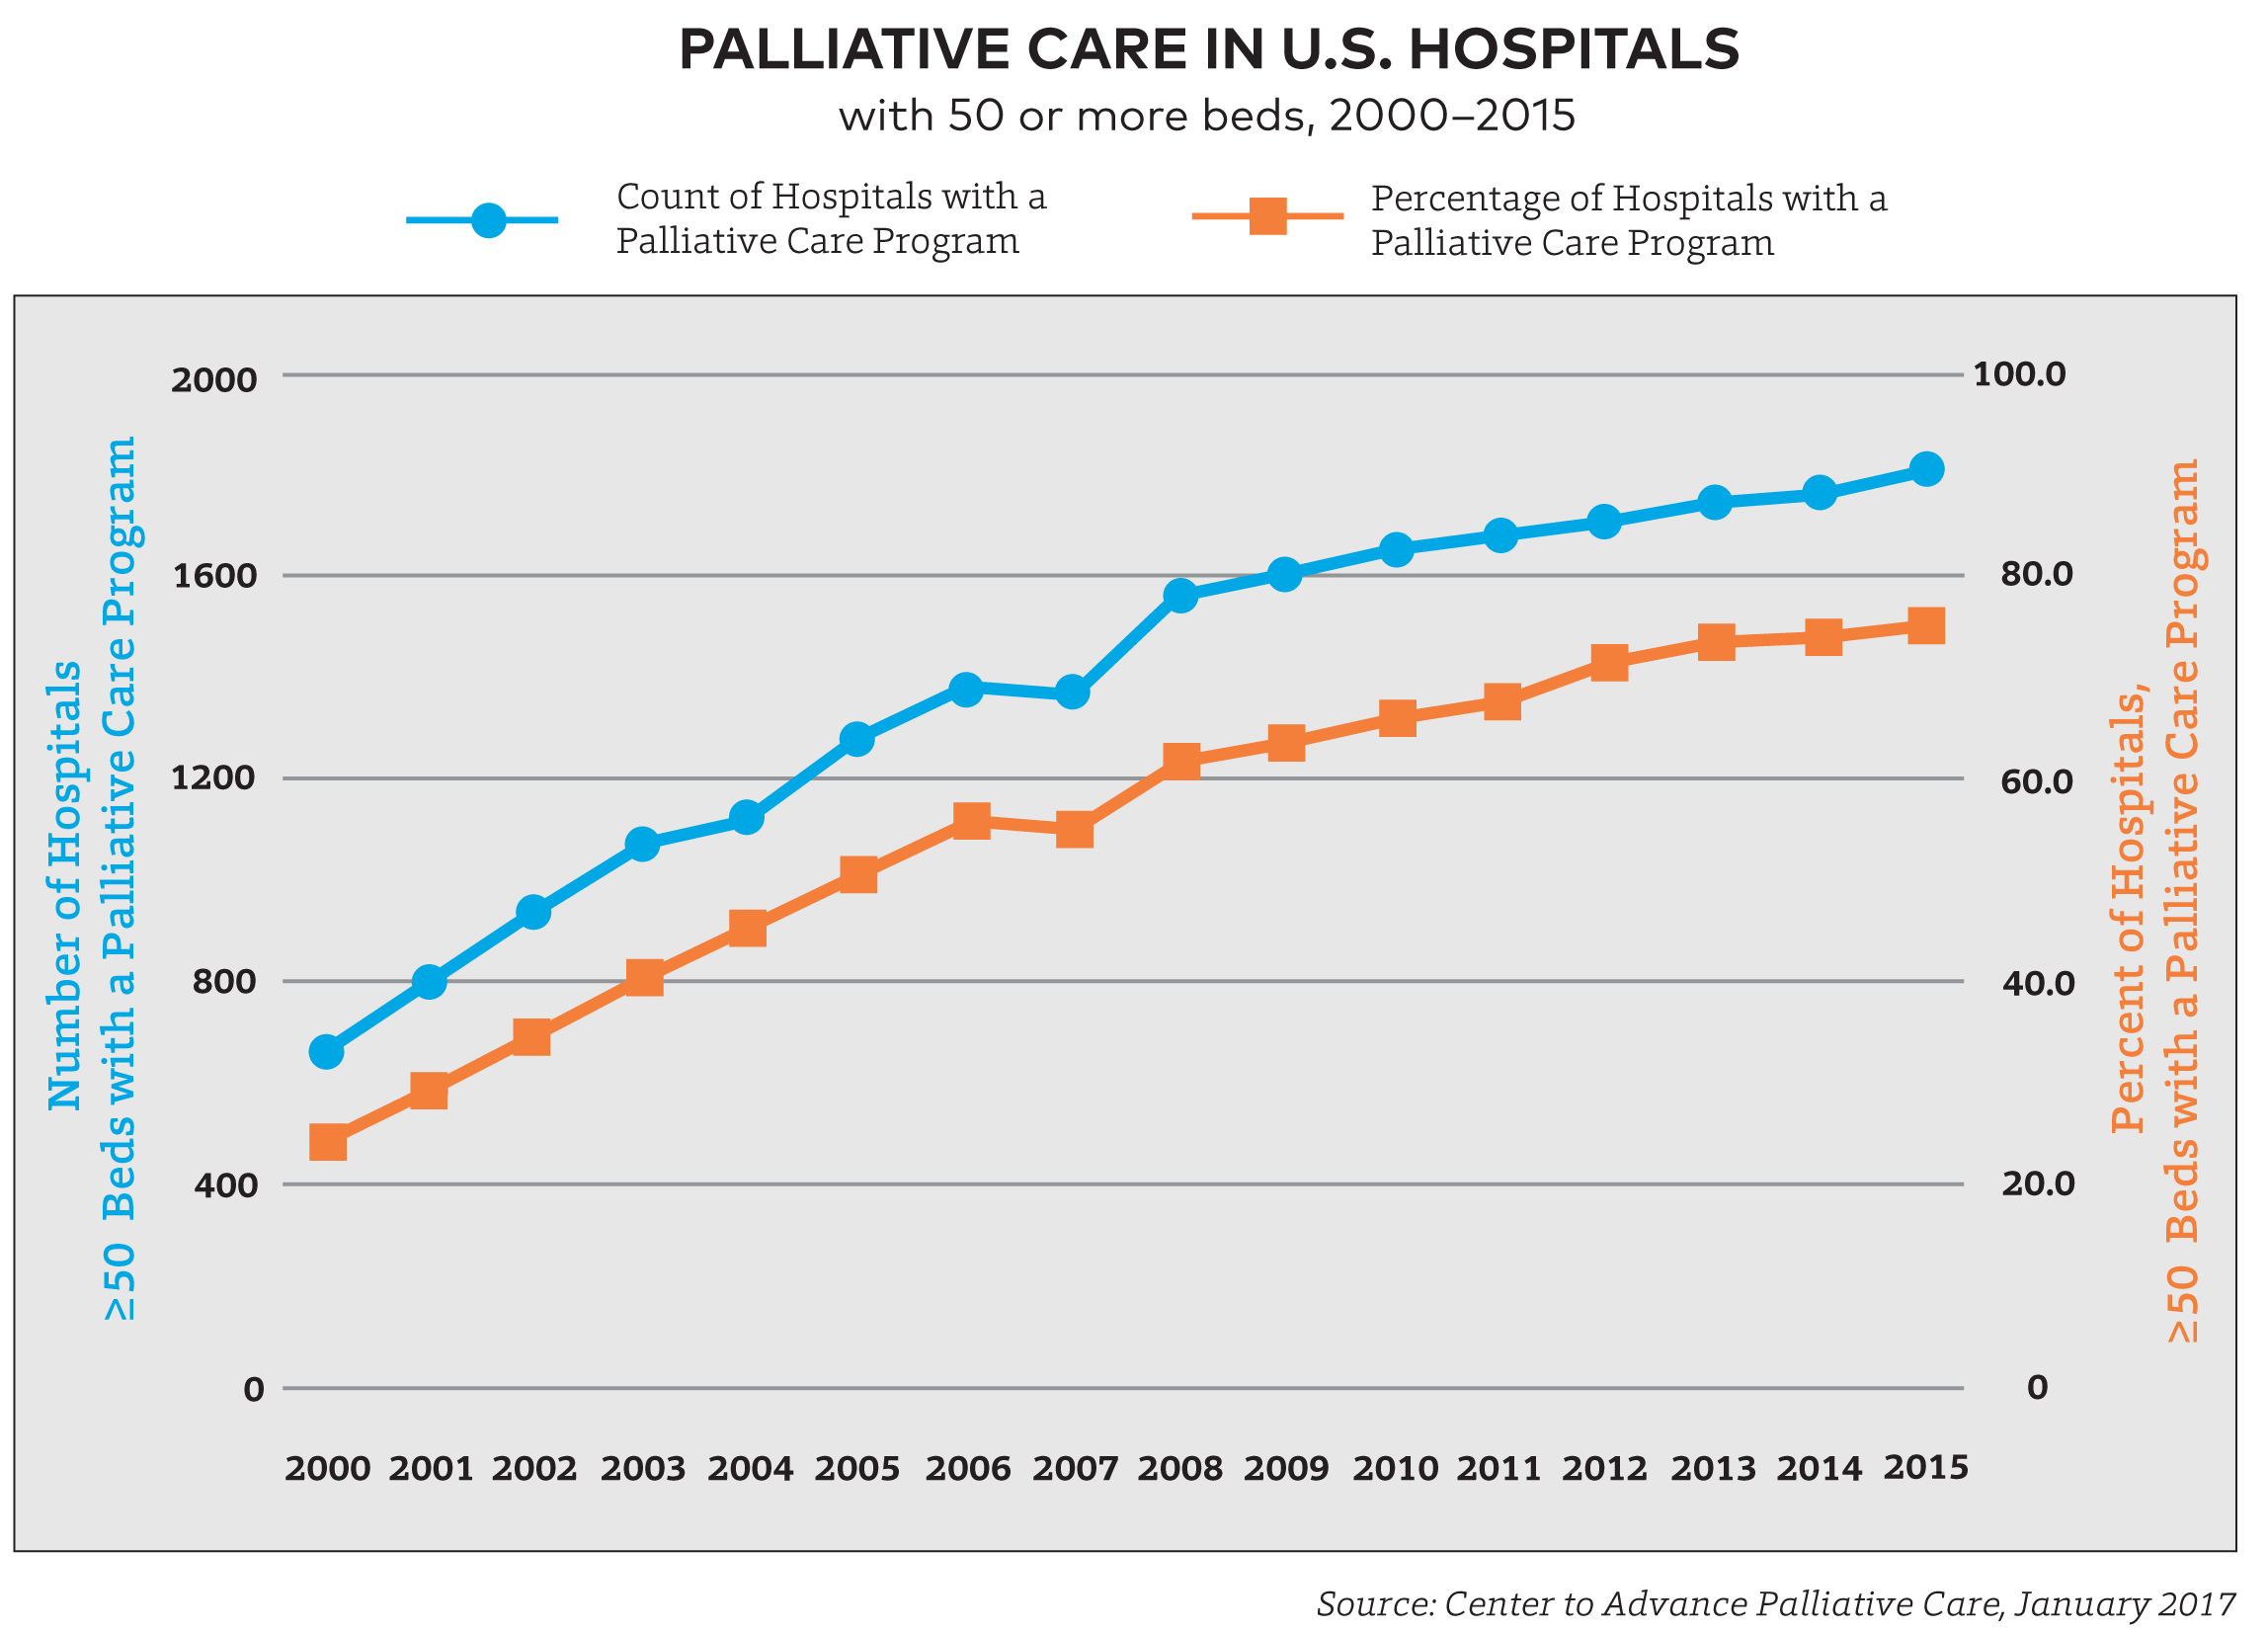 Palliative Care in U.S. Hospitals